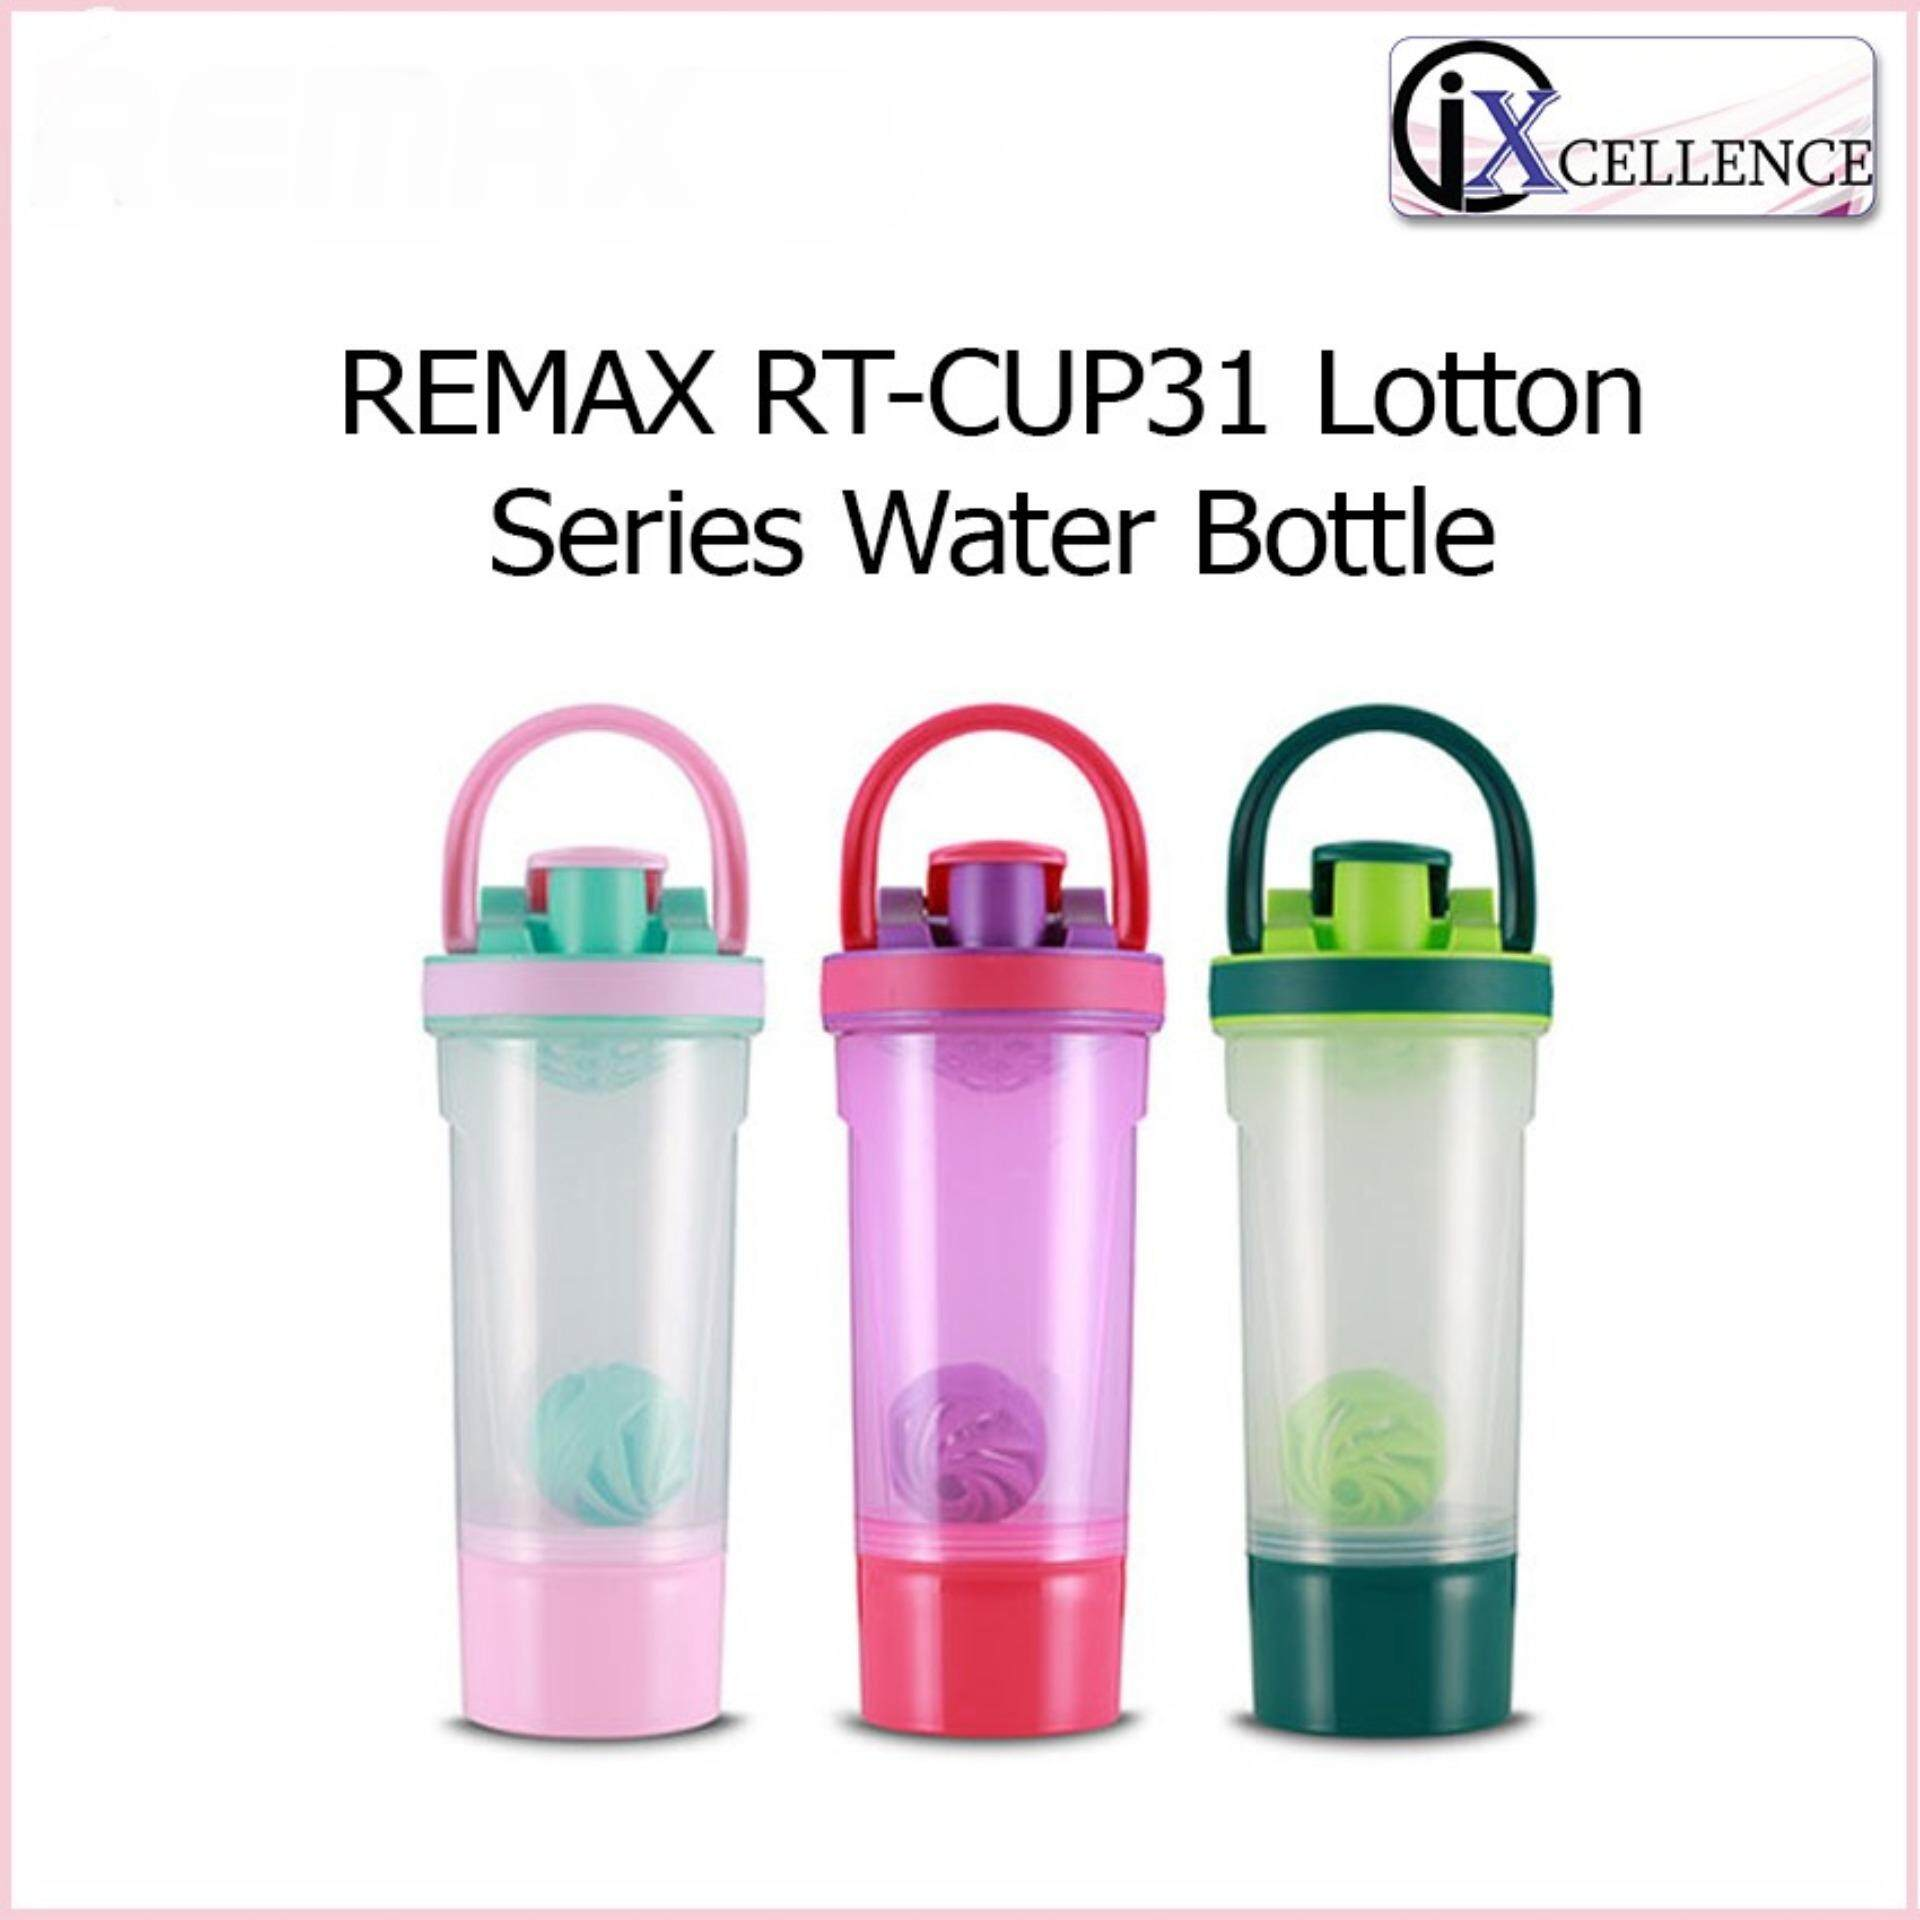 [IX] Remax RT-CUP31 Lotton Series Water Bottle